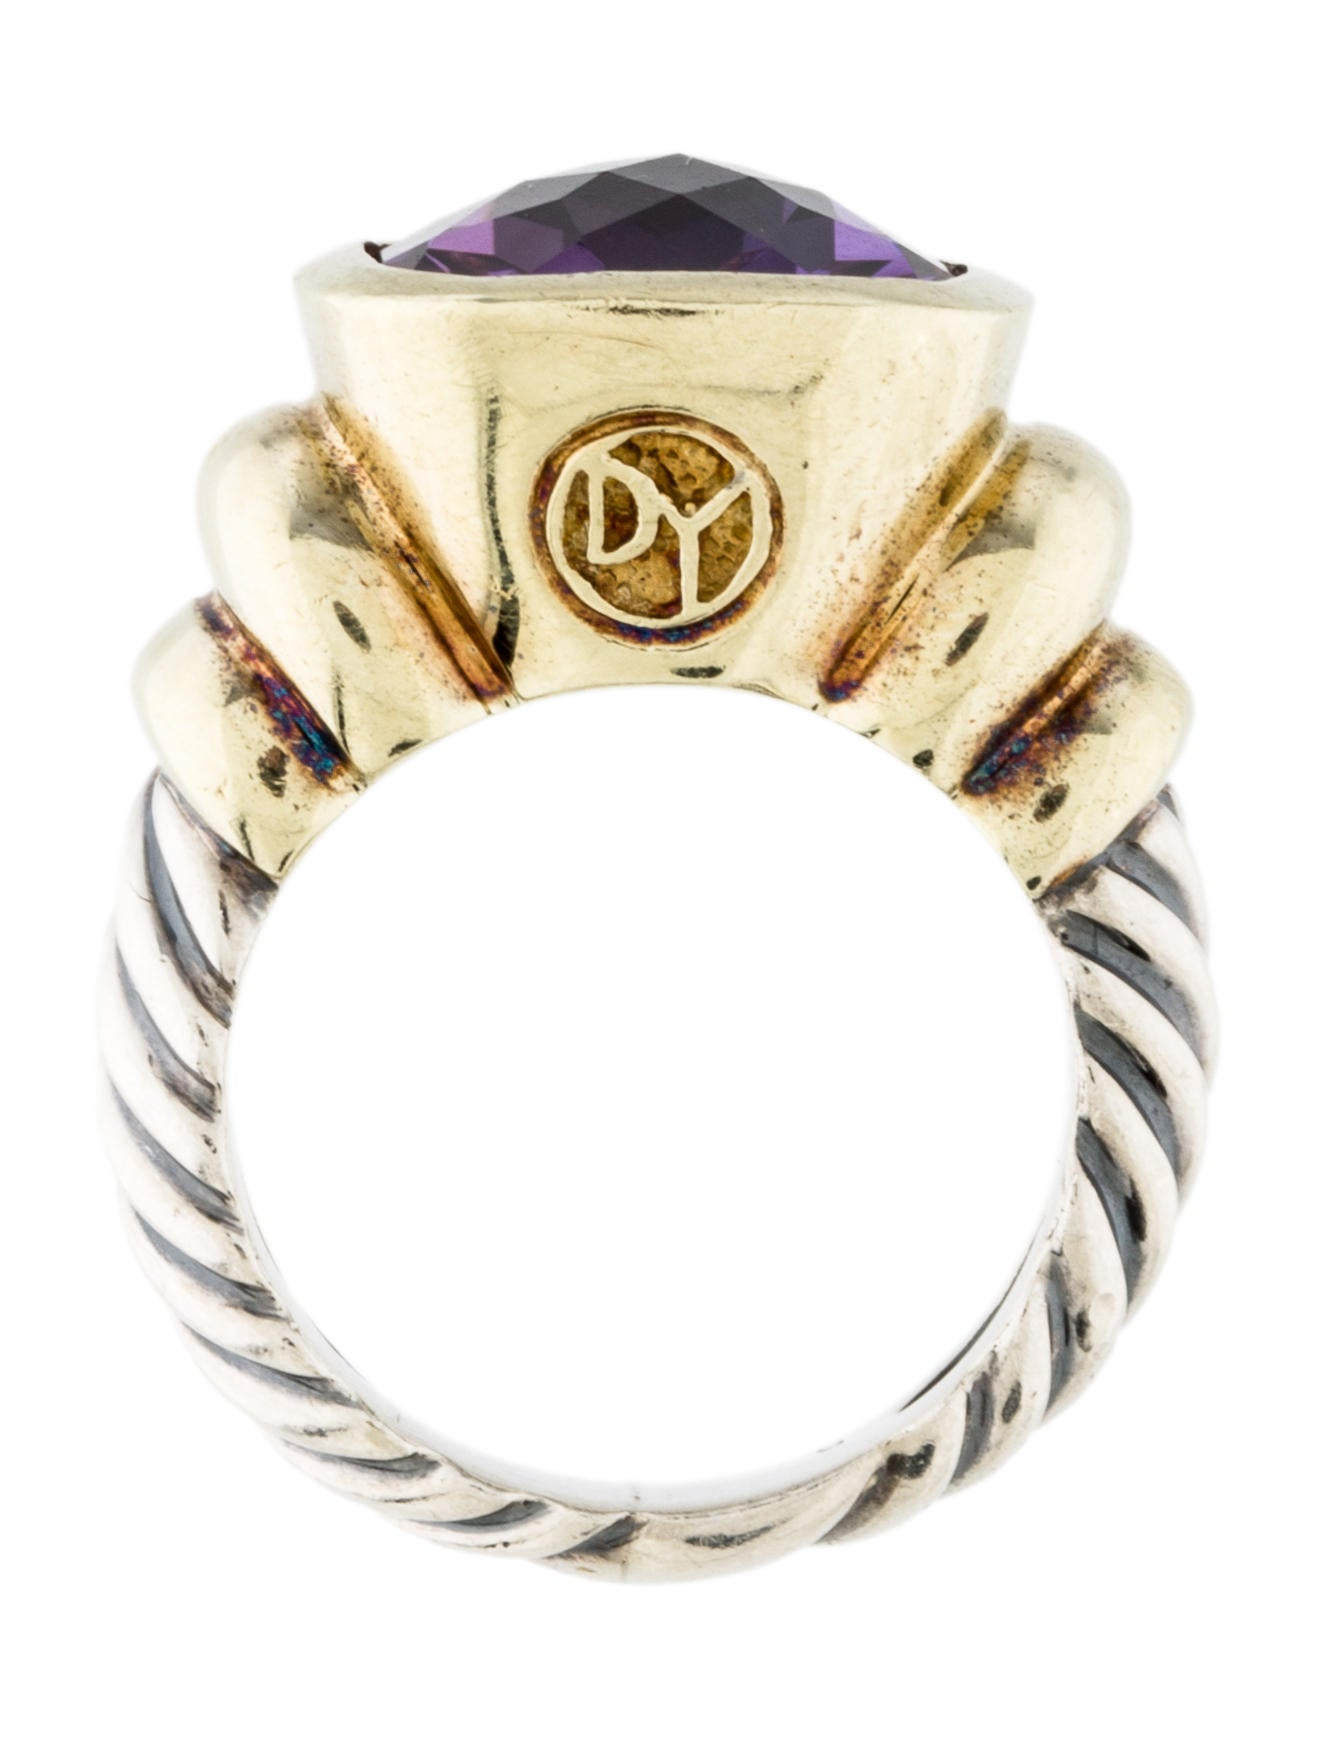 David Yurman Two Tone Amethyst Cocktail Ring Rings